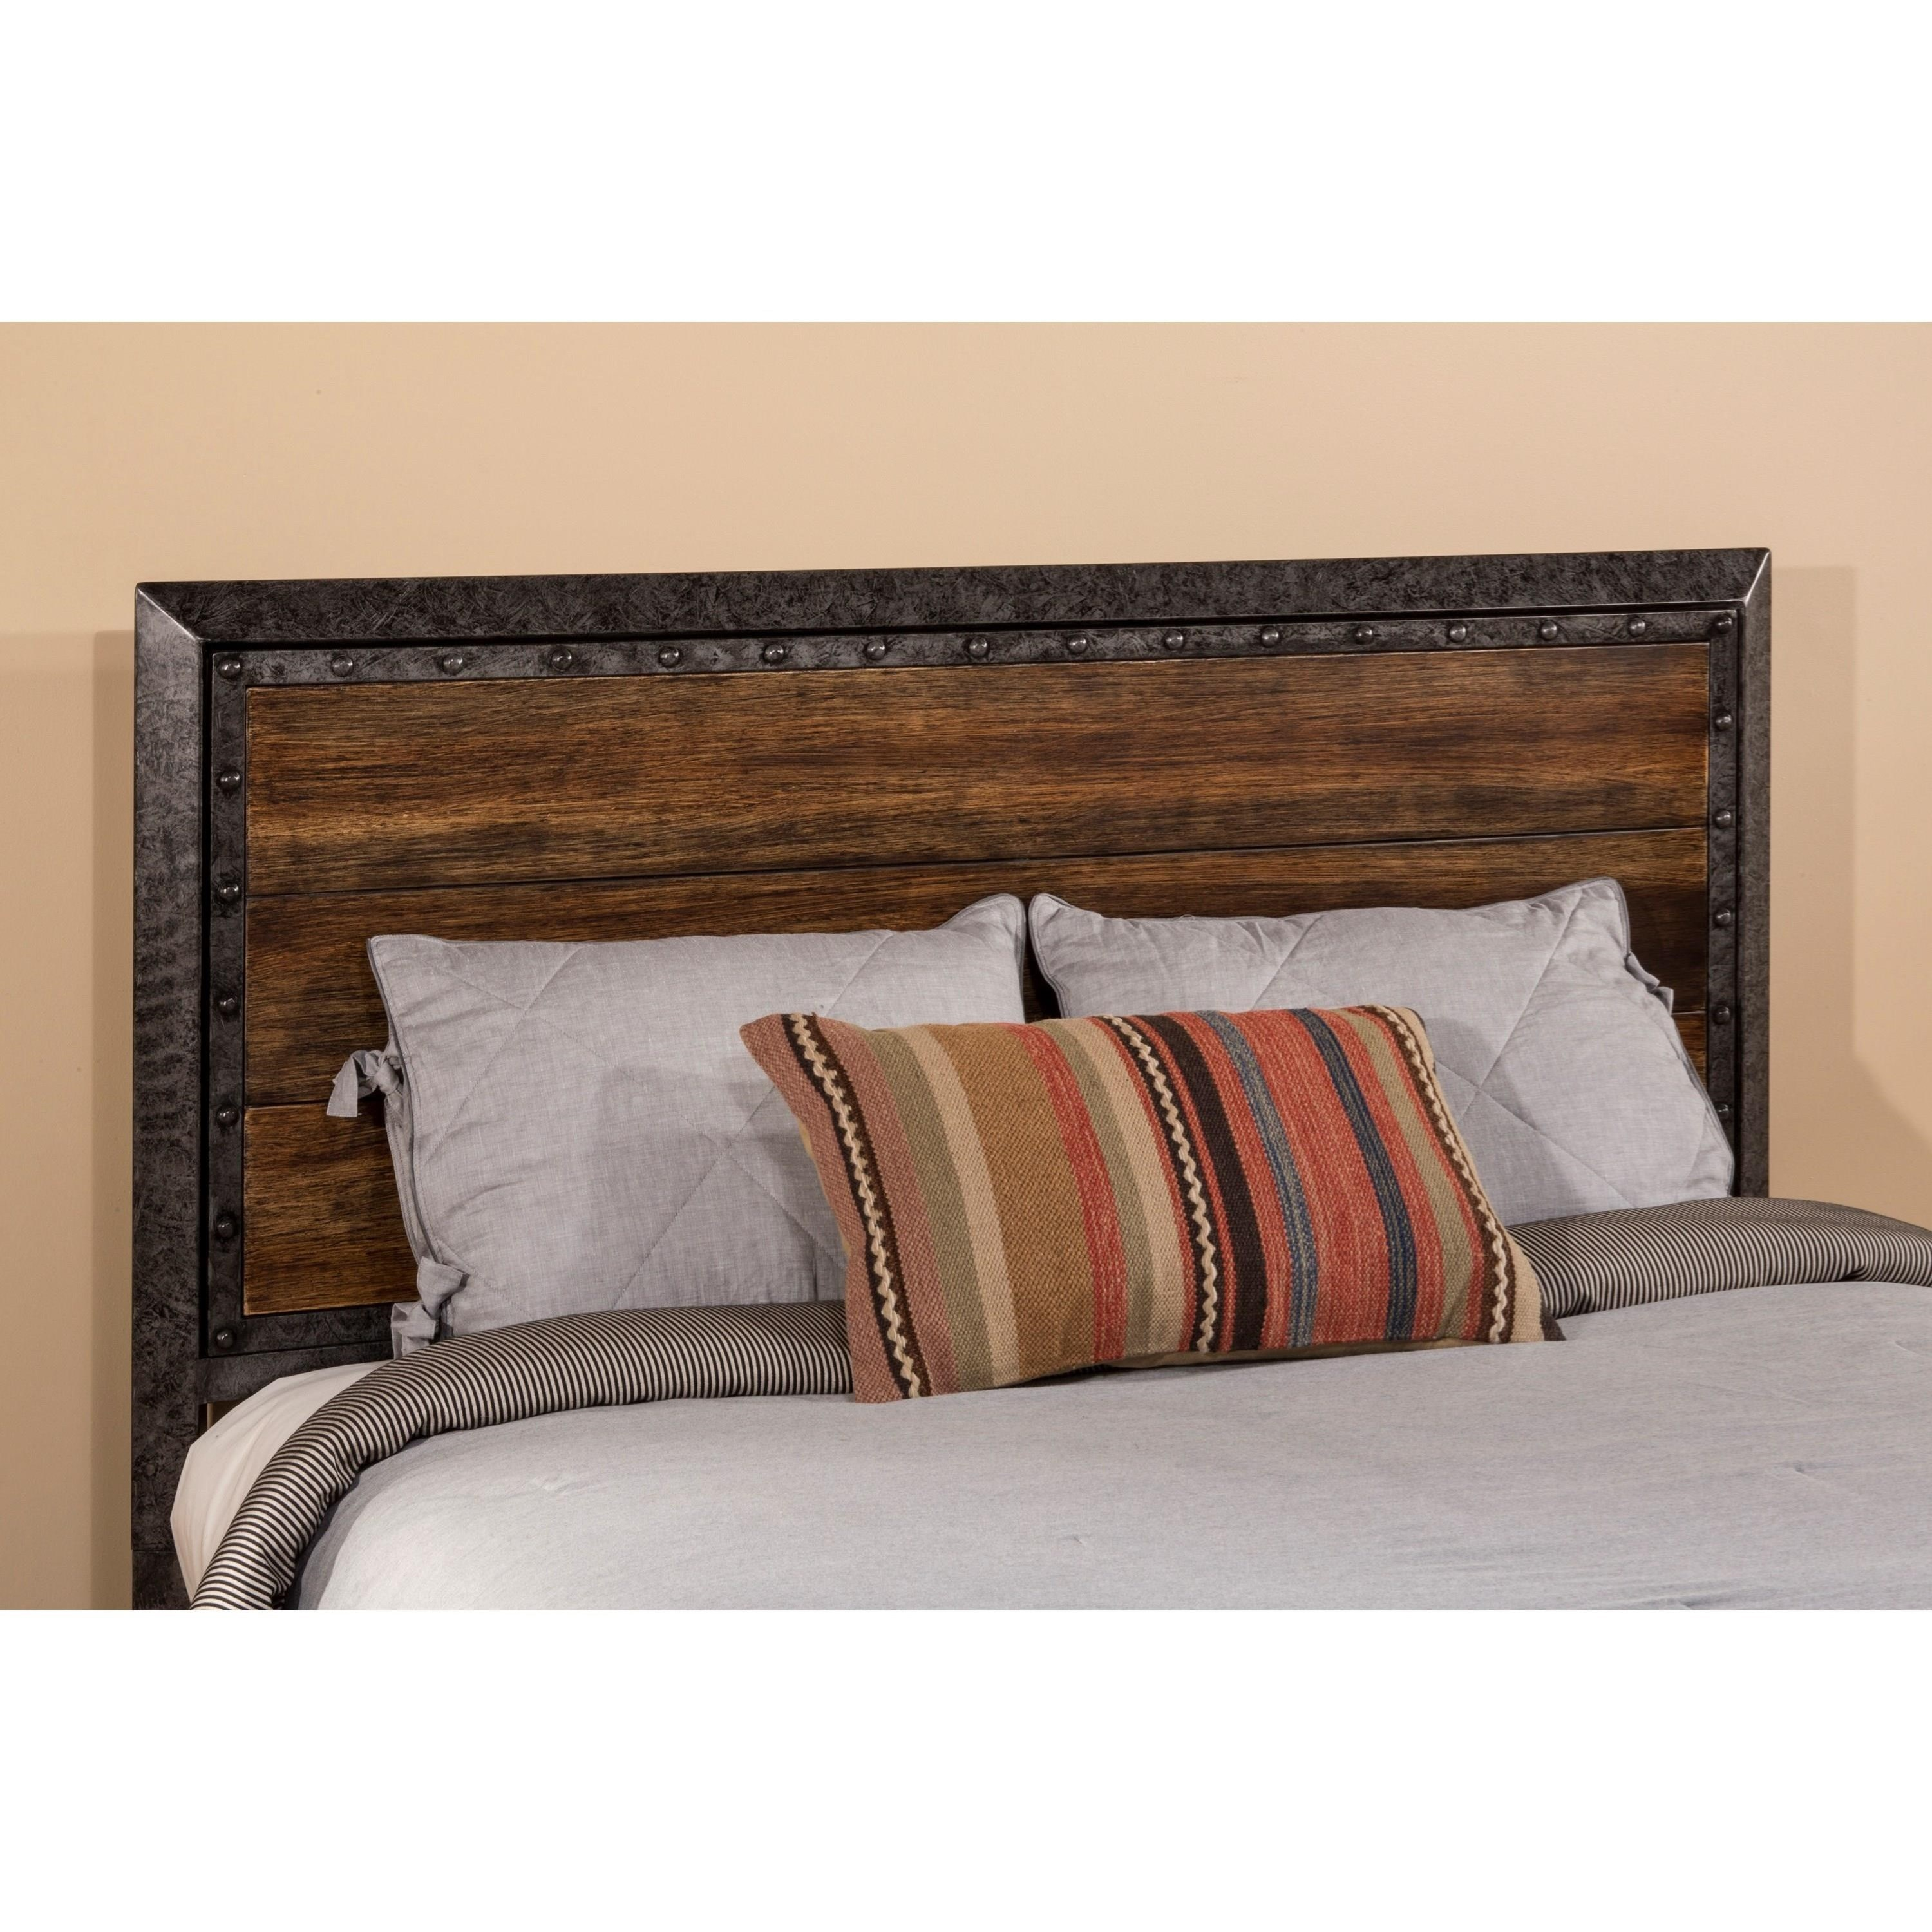 Hillsdale Metal Beds Queen Mackinac Headboard - Item Number: 1858HQR